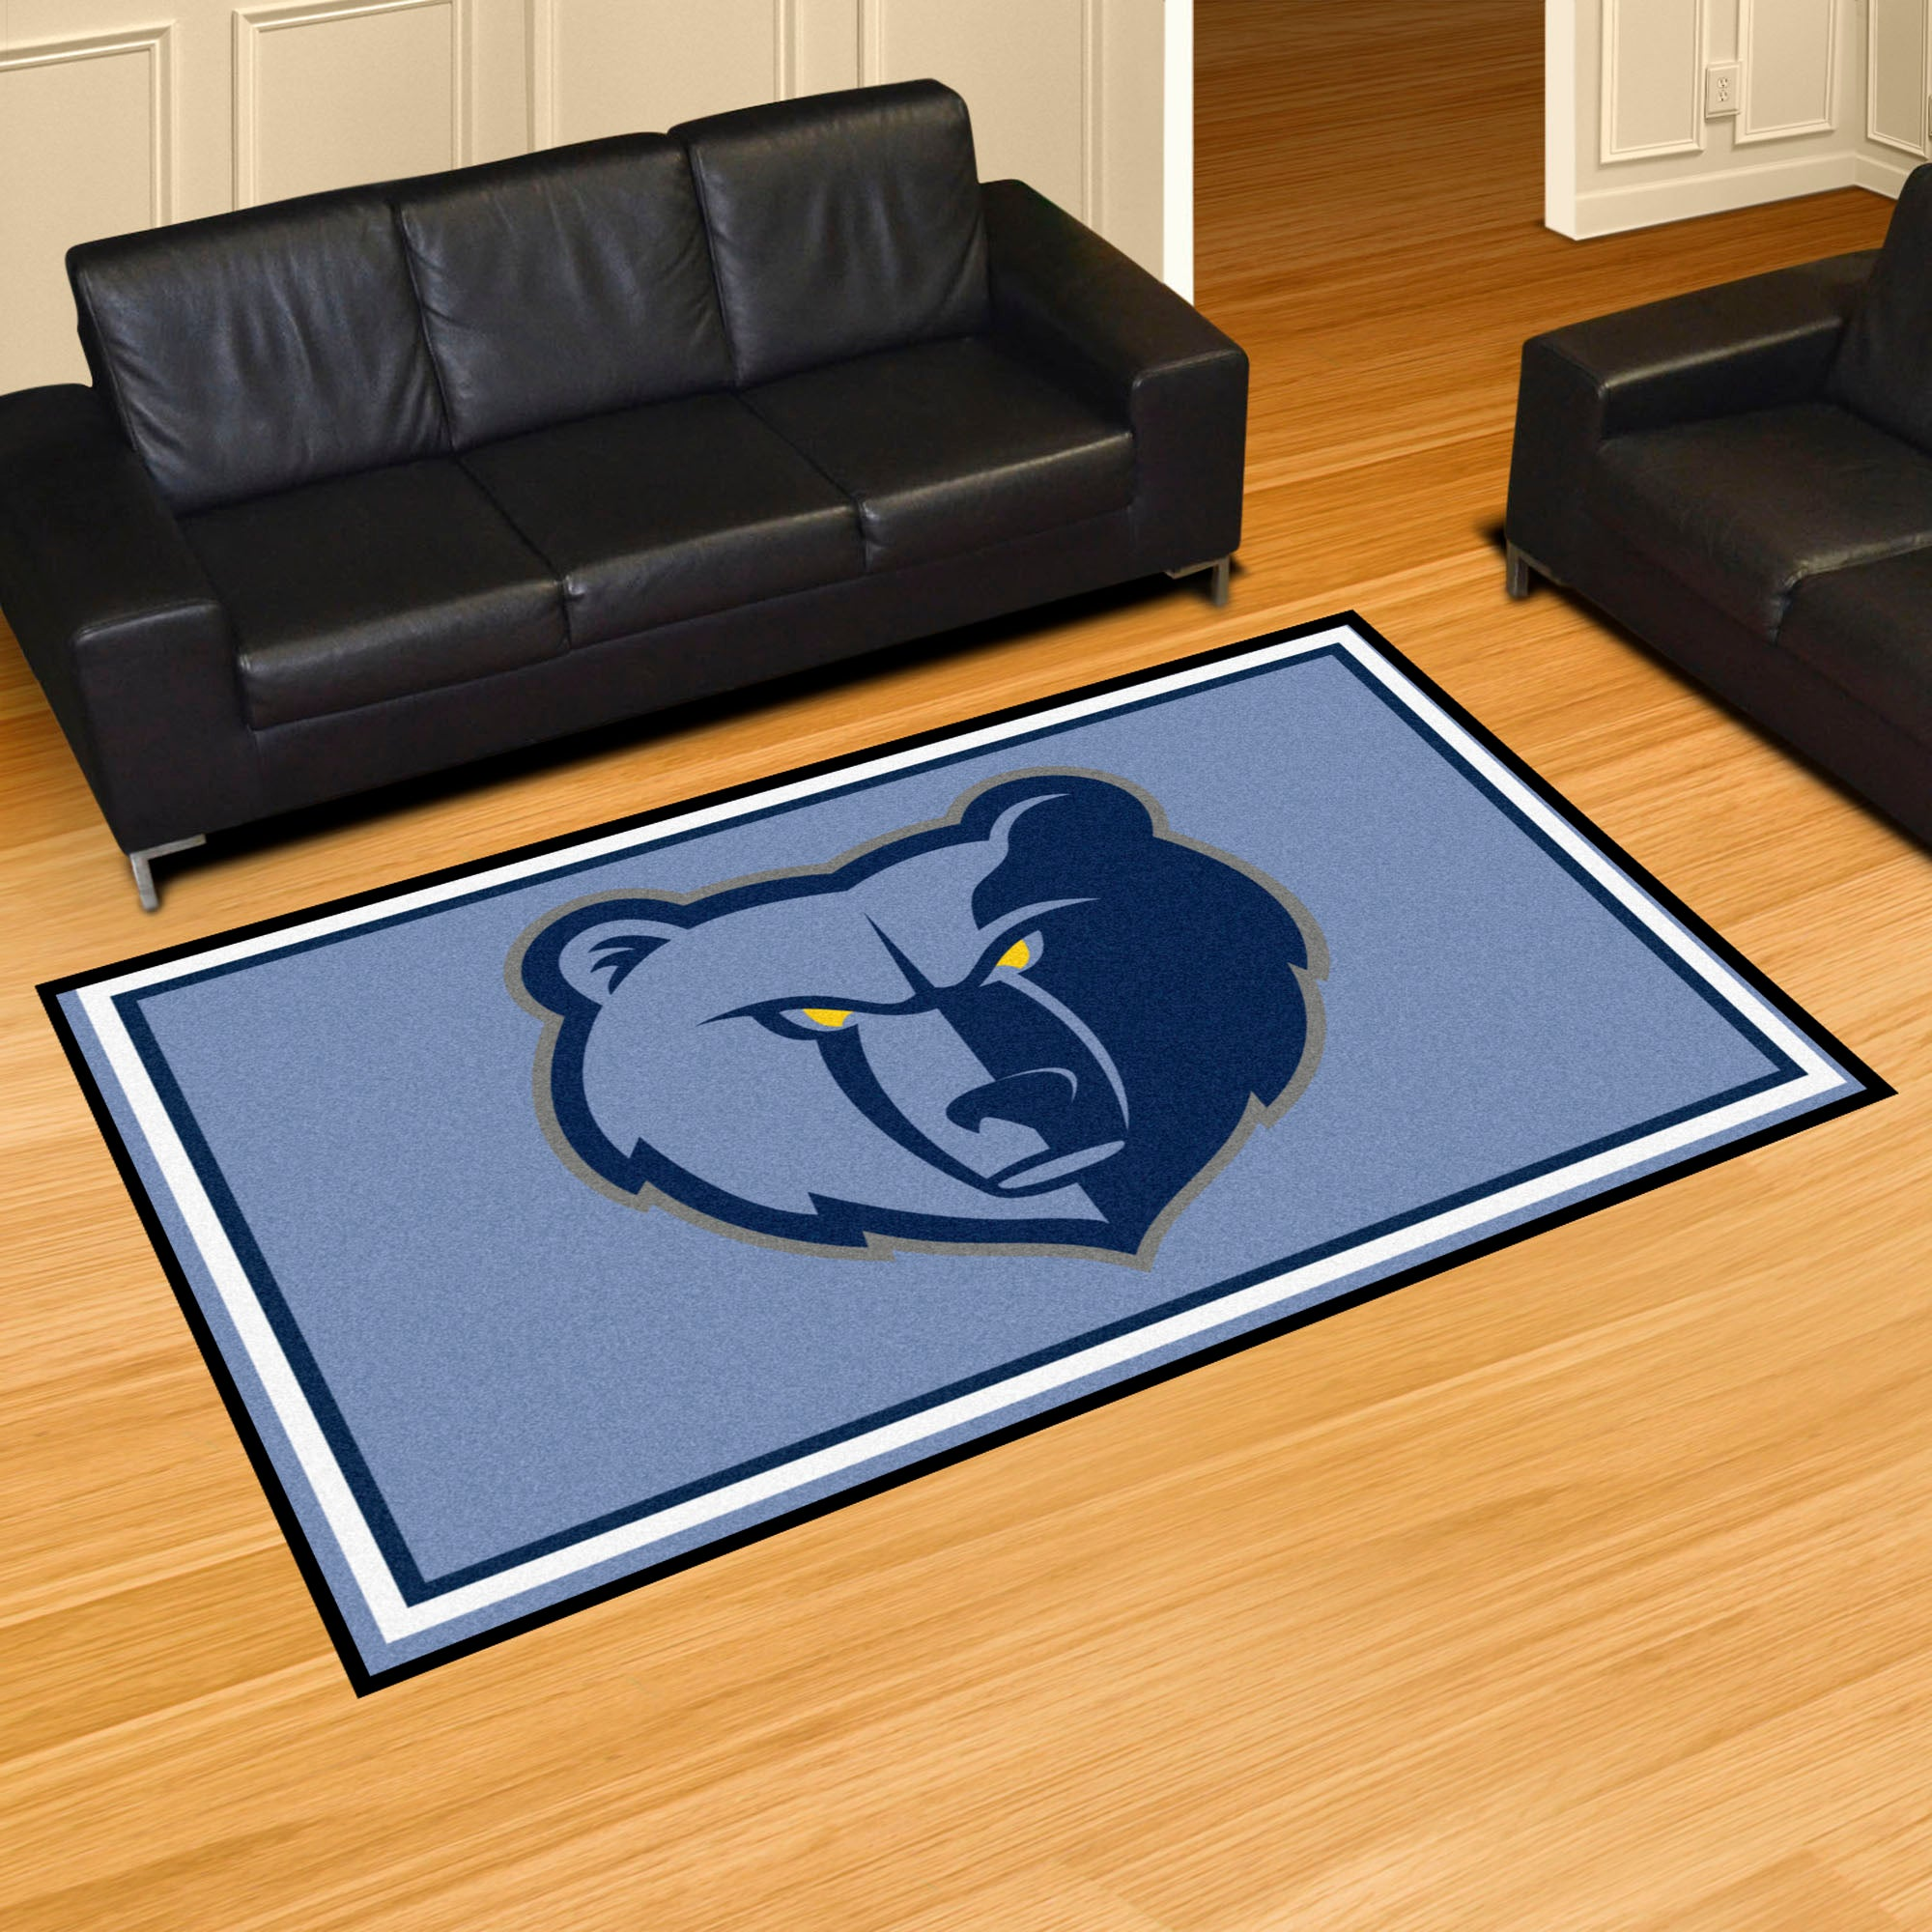 Memphis Grizzlies Rug  NBA Area Rug - Fan Rugs